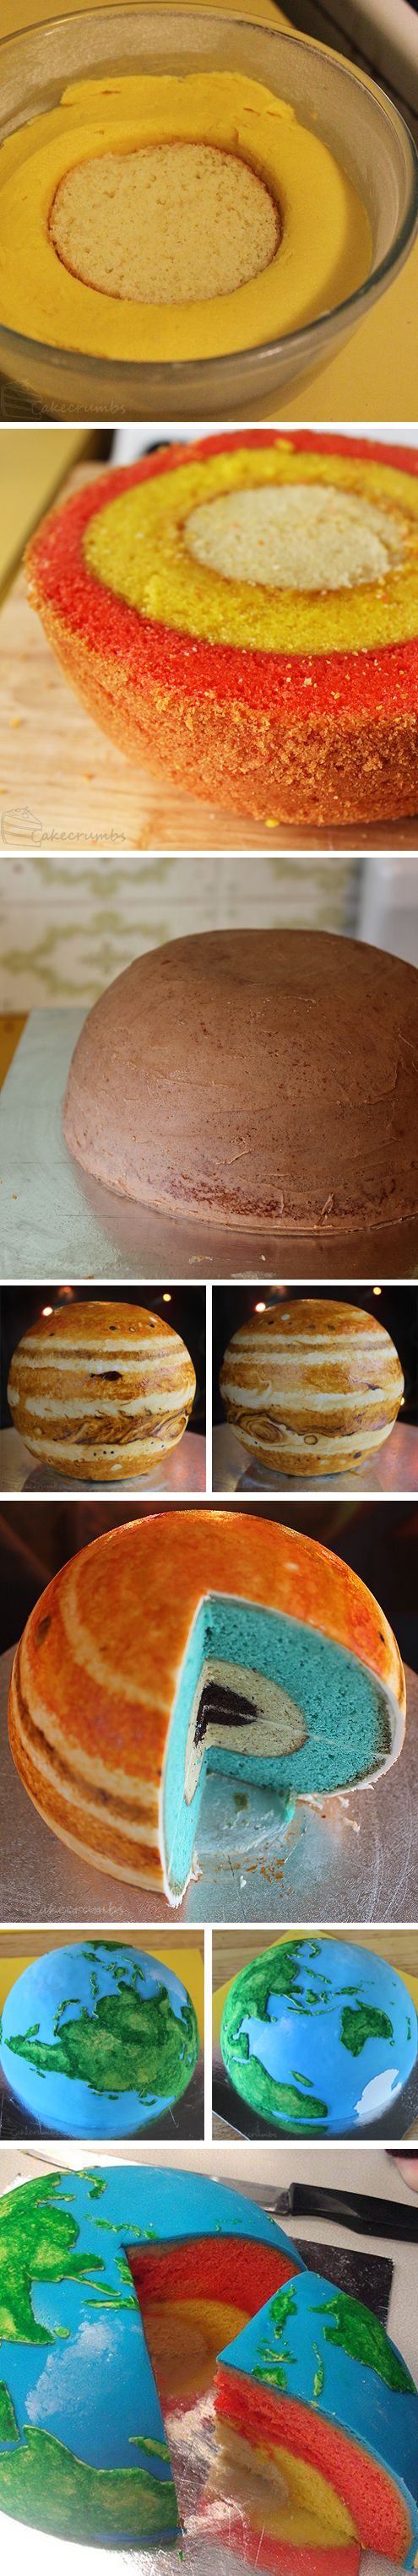 Cake Planets - there's pretty much no way I'm this good of a baker, but hey, it doesn't hurt to dream/pin.